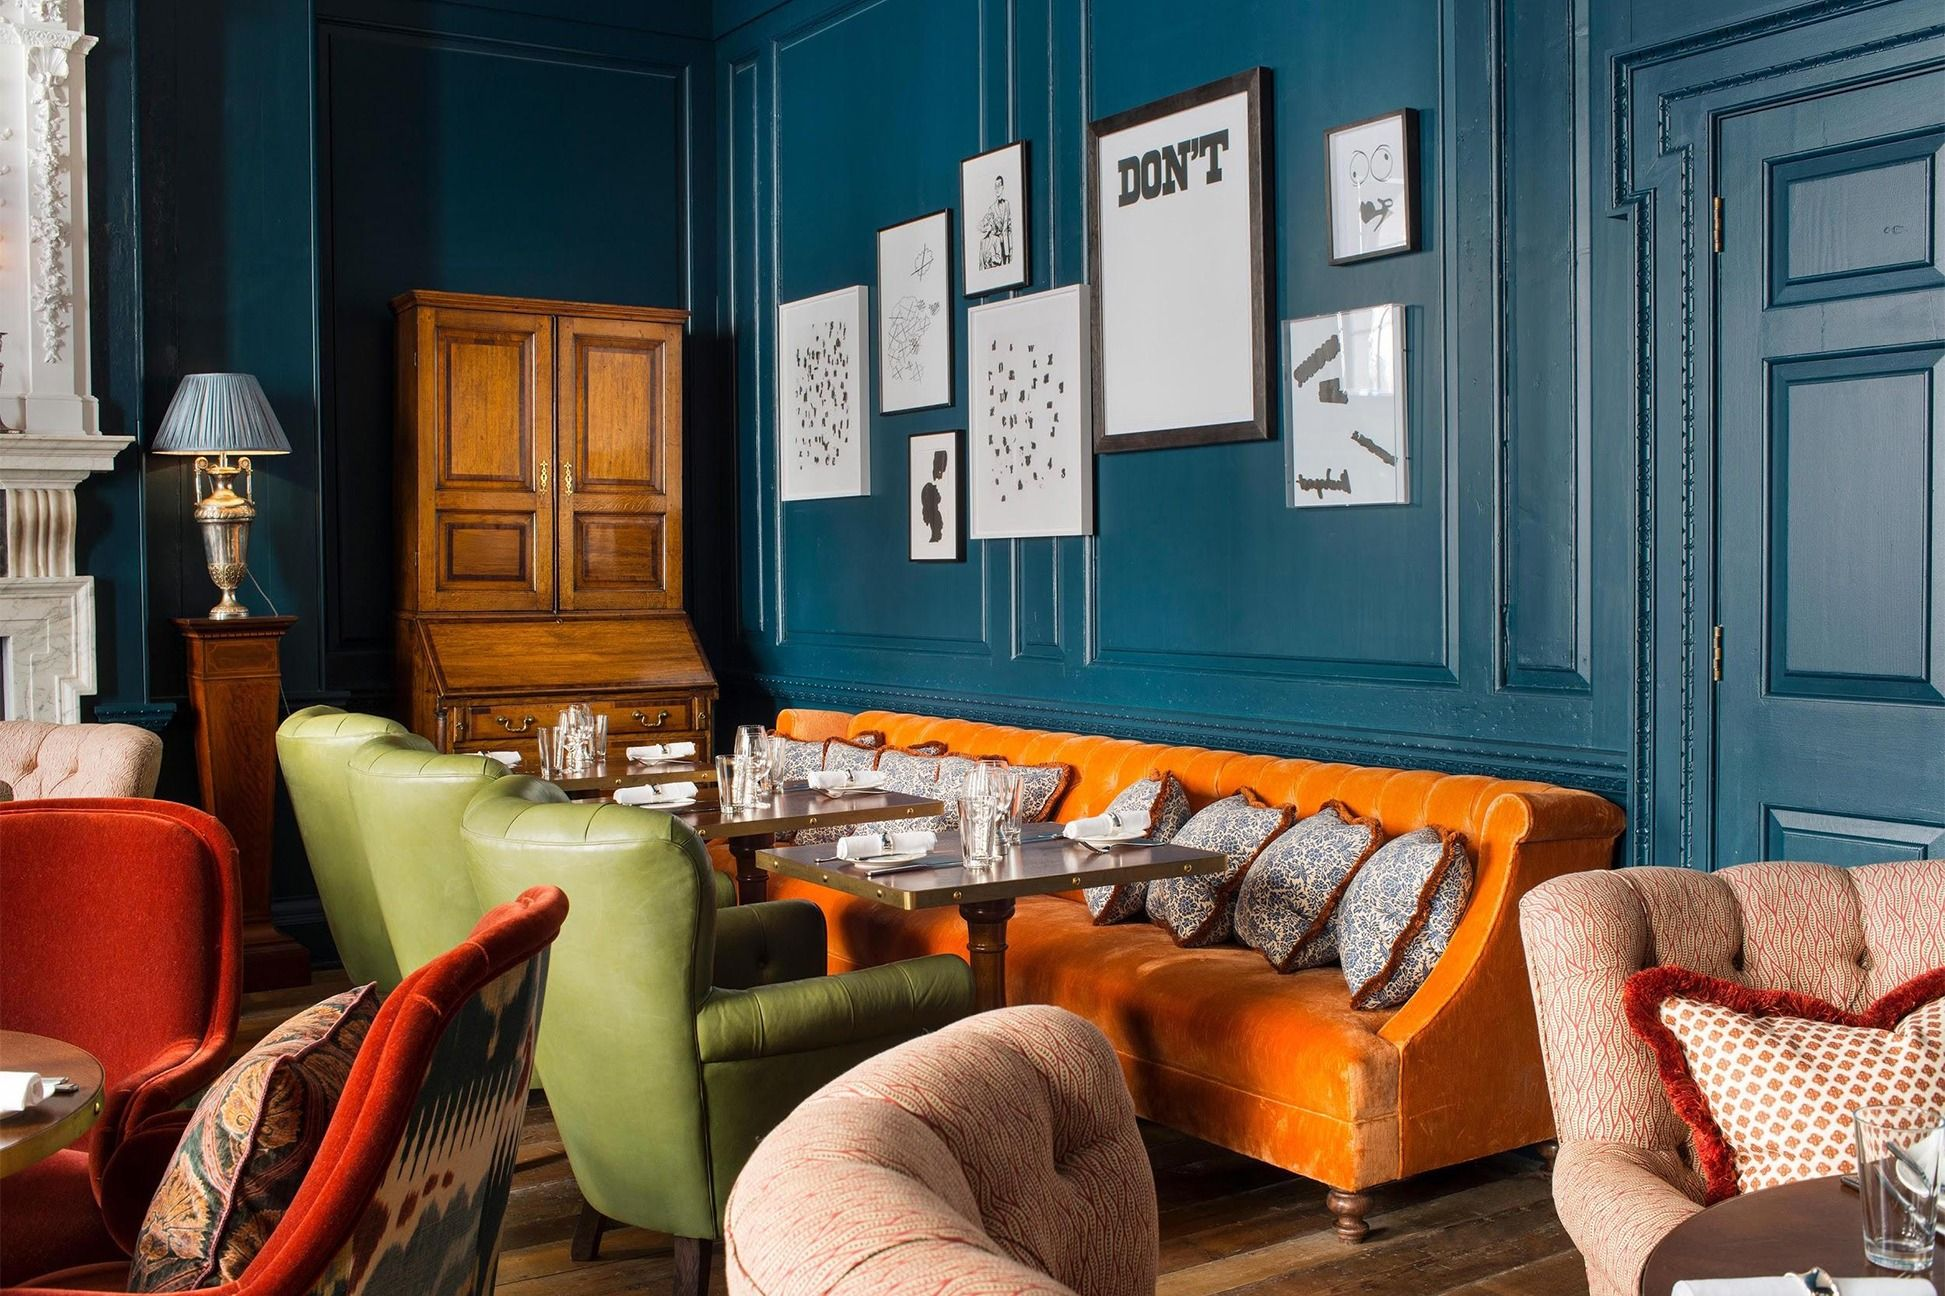 Soho House S British Design Style Is The Cozy Look We All Need Right Now British Decor Soho House Decor